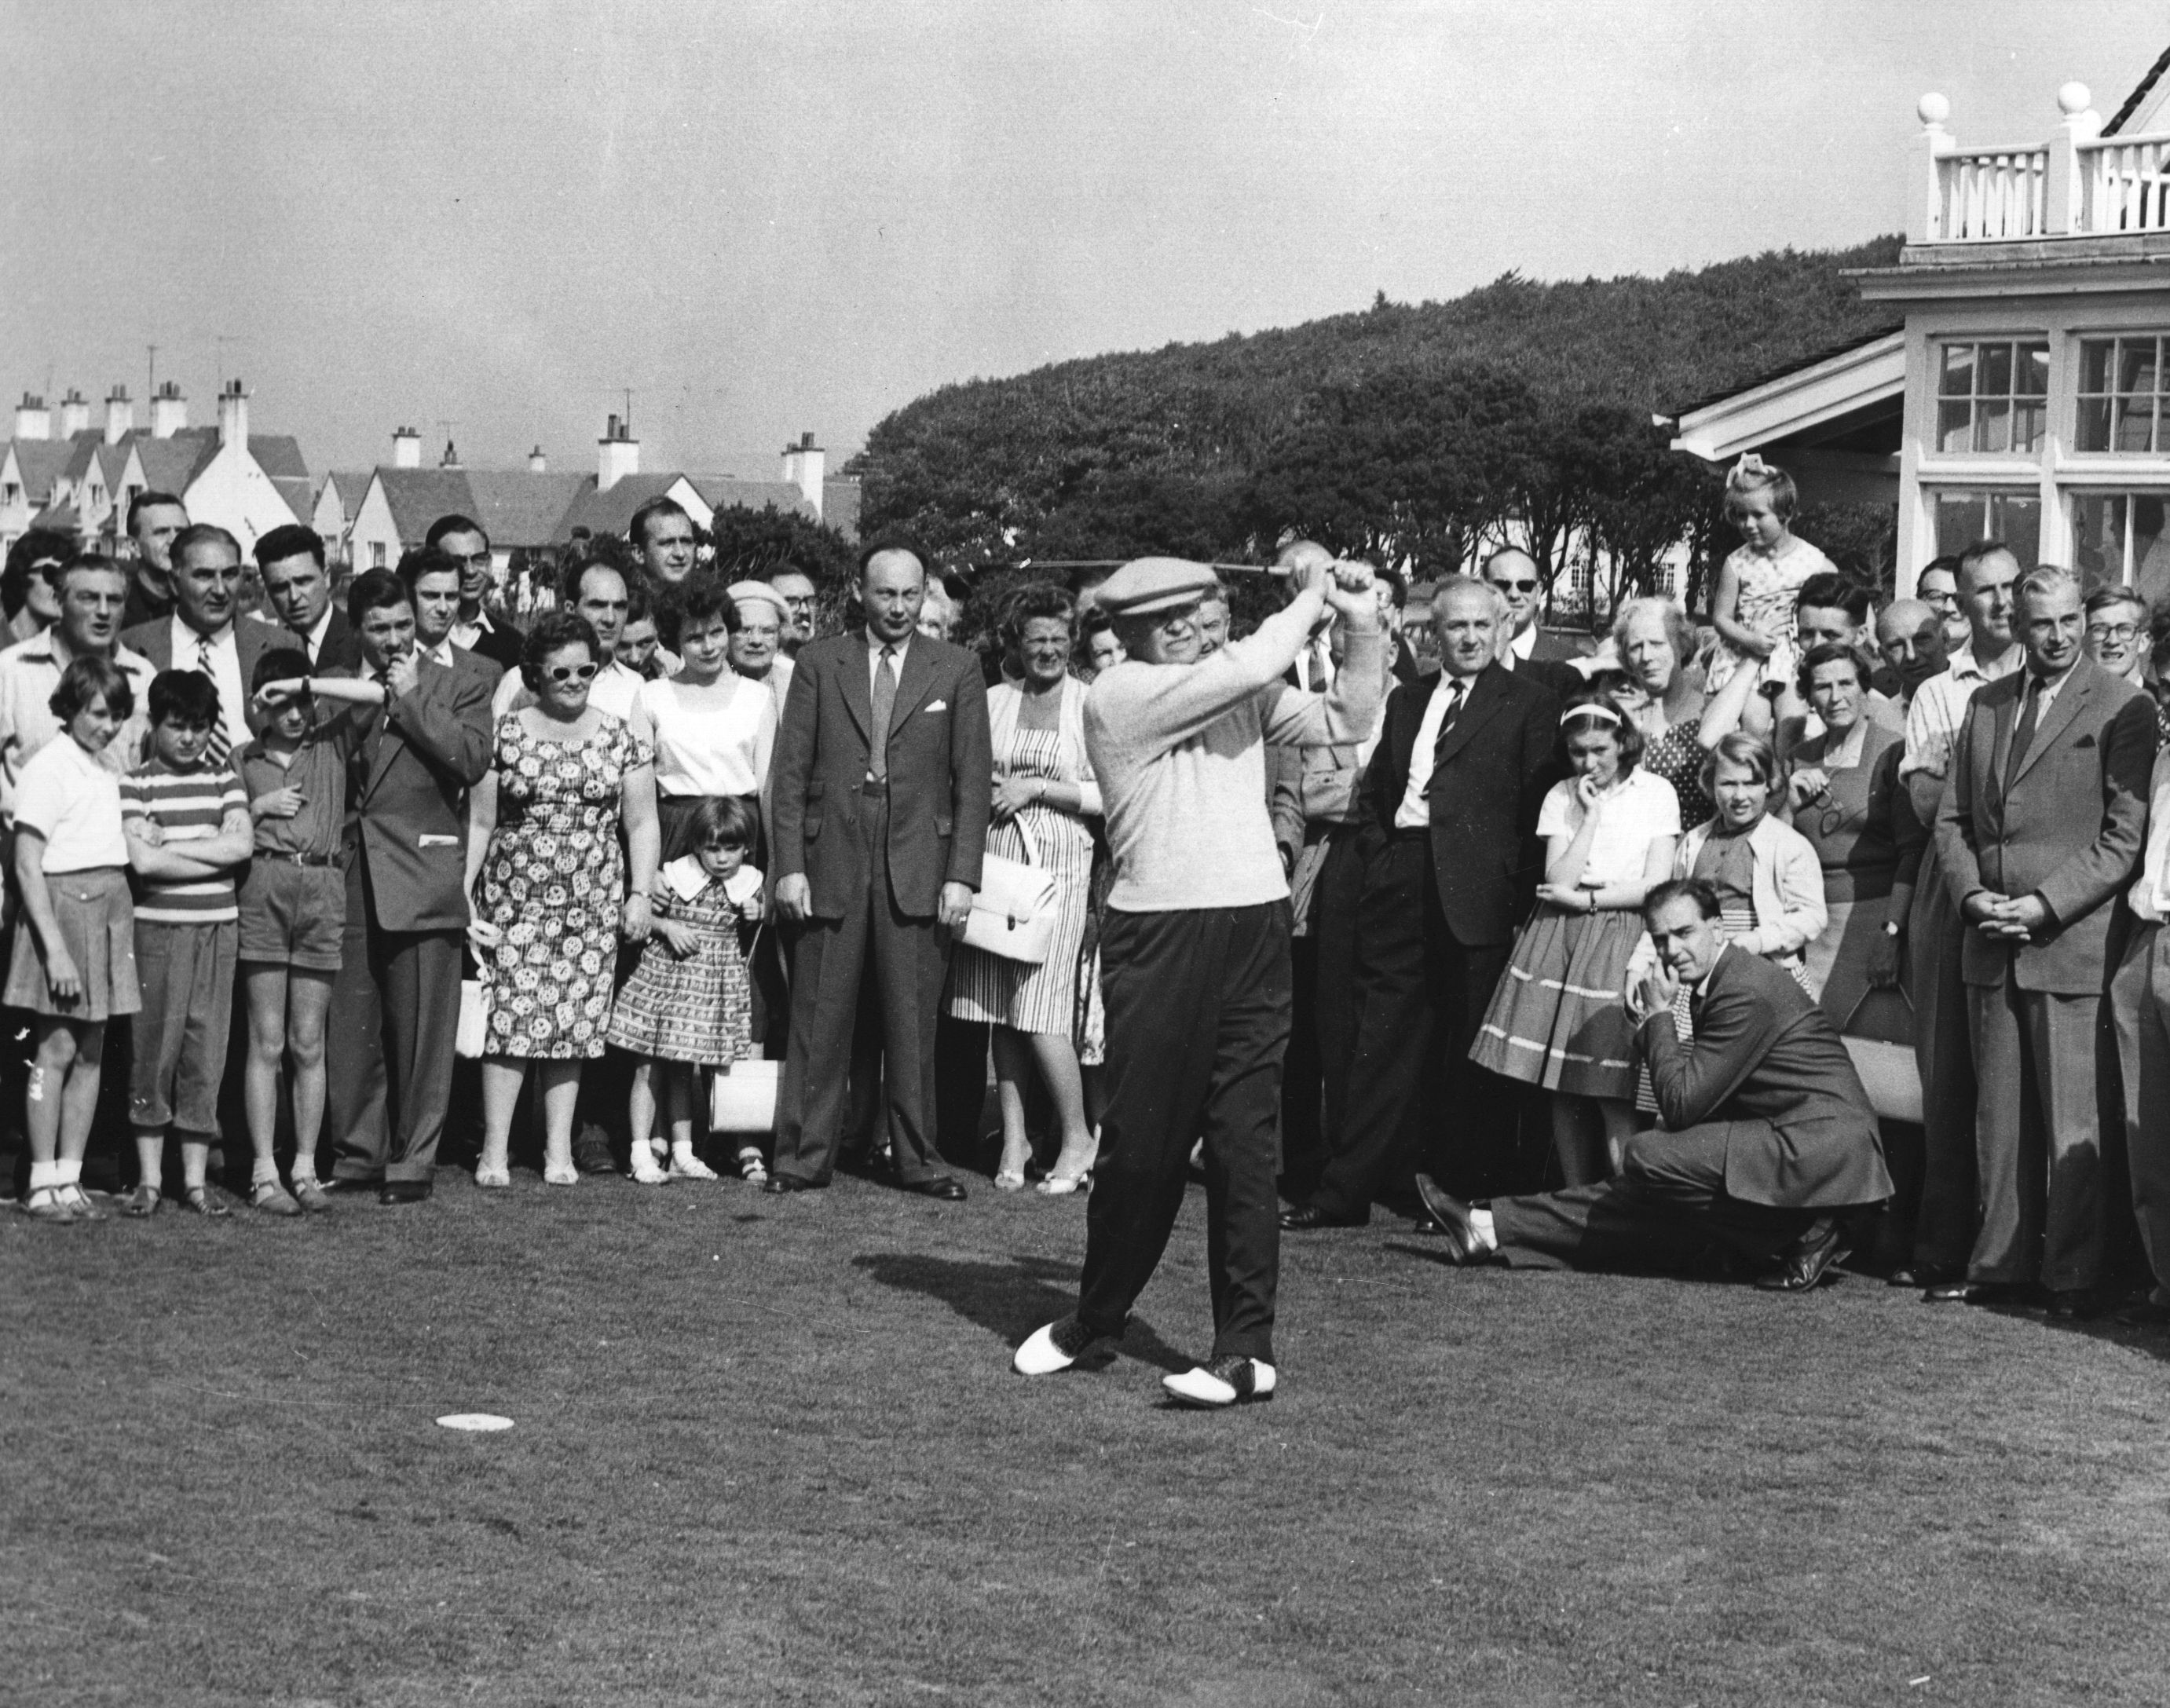 Dwight D Eisenhower golfing